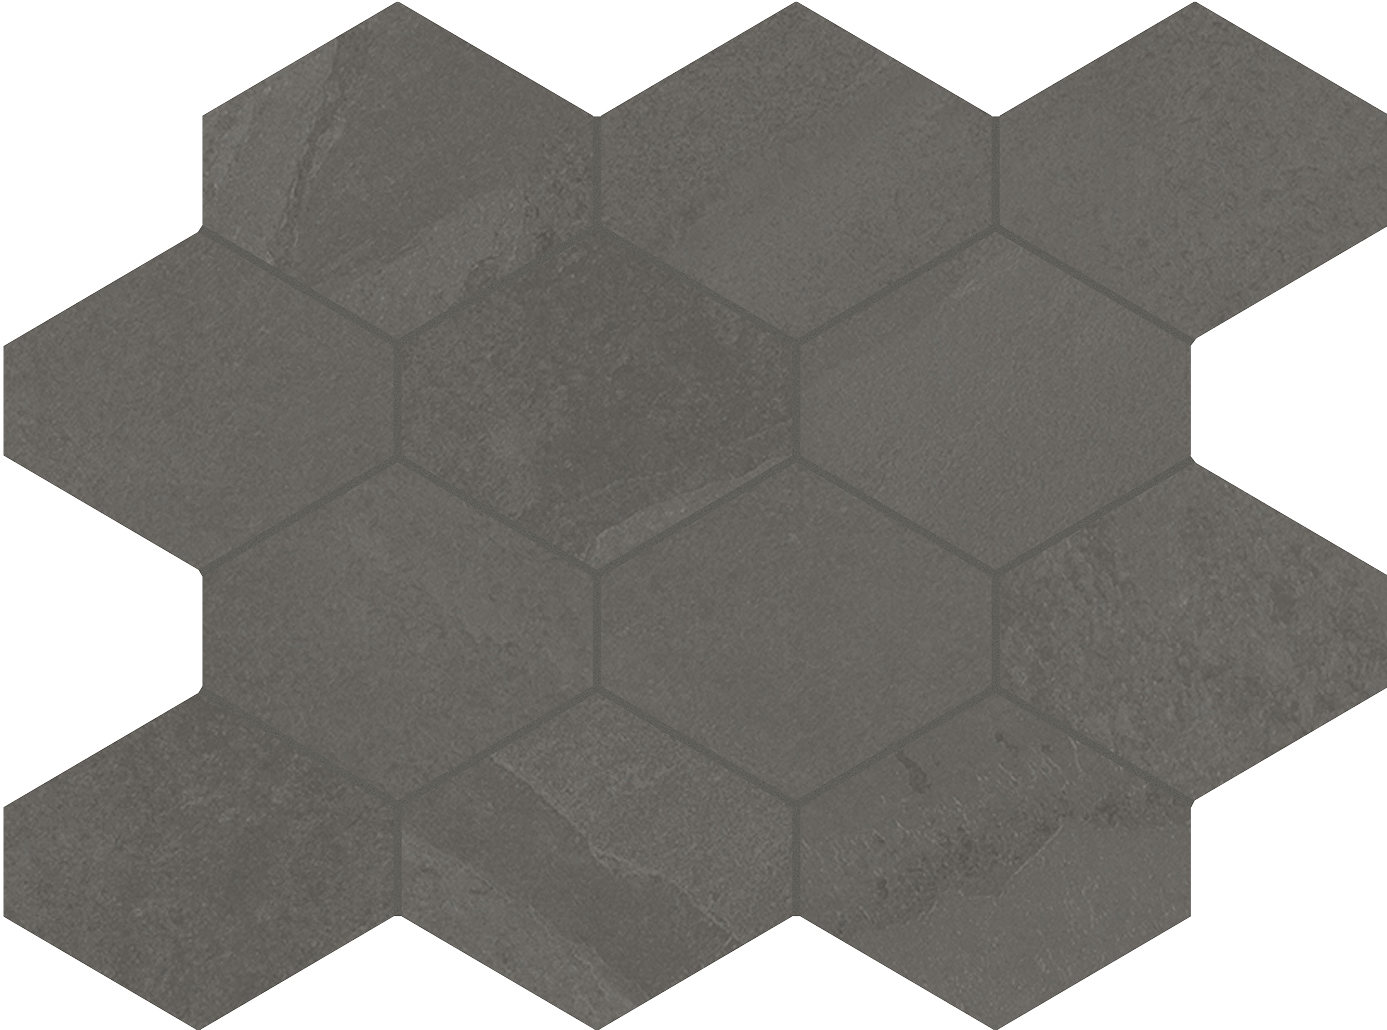 4 x 4 Brazilian Slate Elephant Grey Rectified Porcelain hexagon